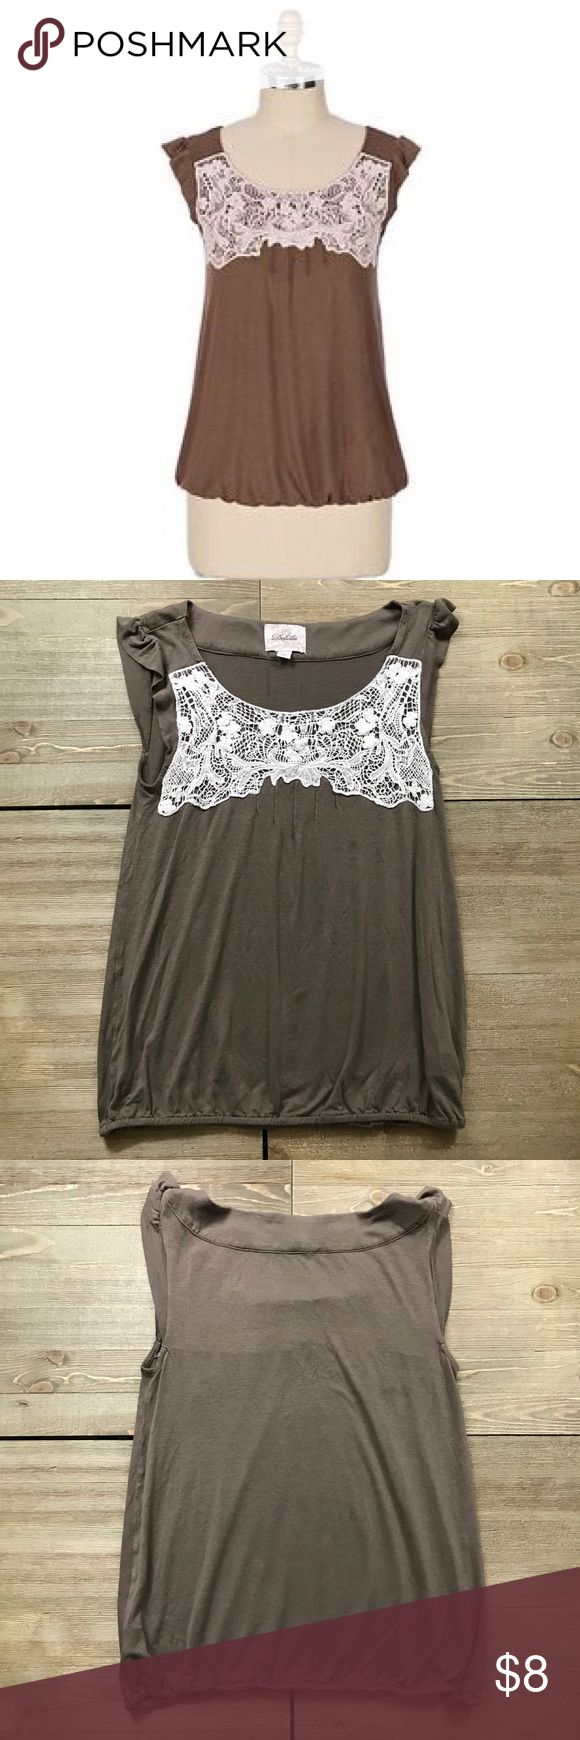 🐿 Anthropologie Deletta Then & Now Tank Top Deletta from Anthropologie. Then & Now tank top. Brown witch cream crochet detailing on the bust. Ruched elastic band at the bottom. Loose fit. There is a spot on it as shown. Anthropologie Tops Tank Tops